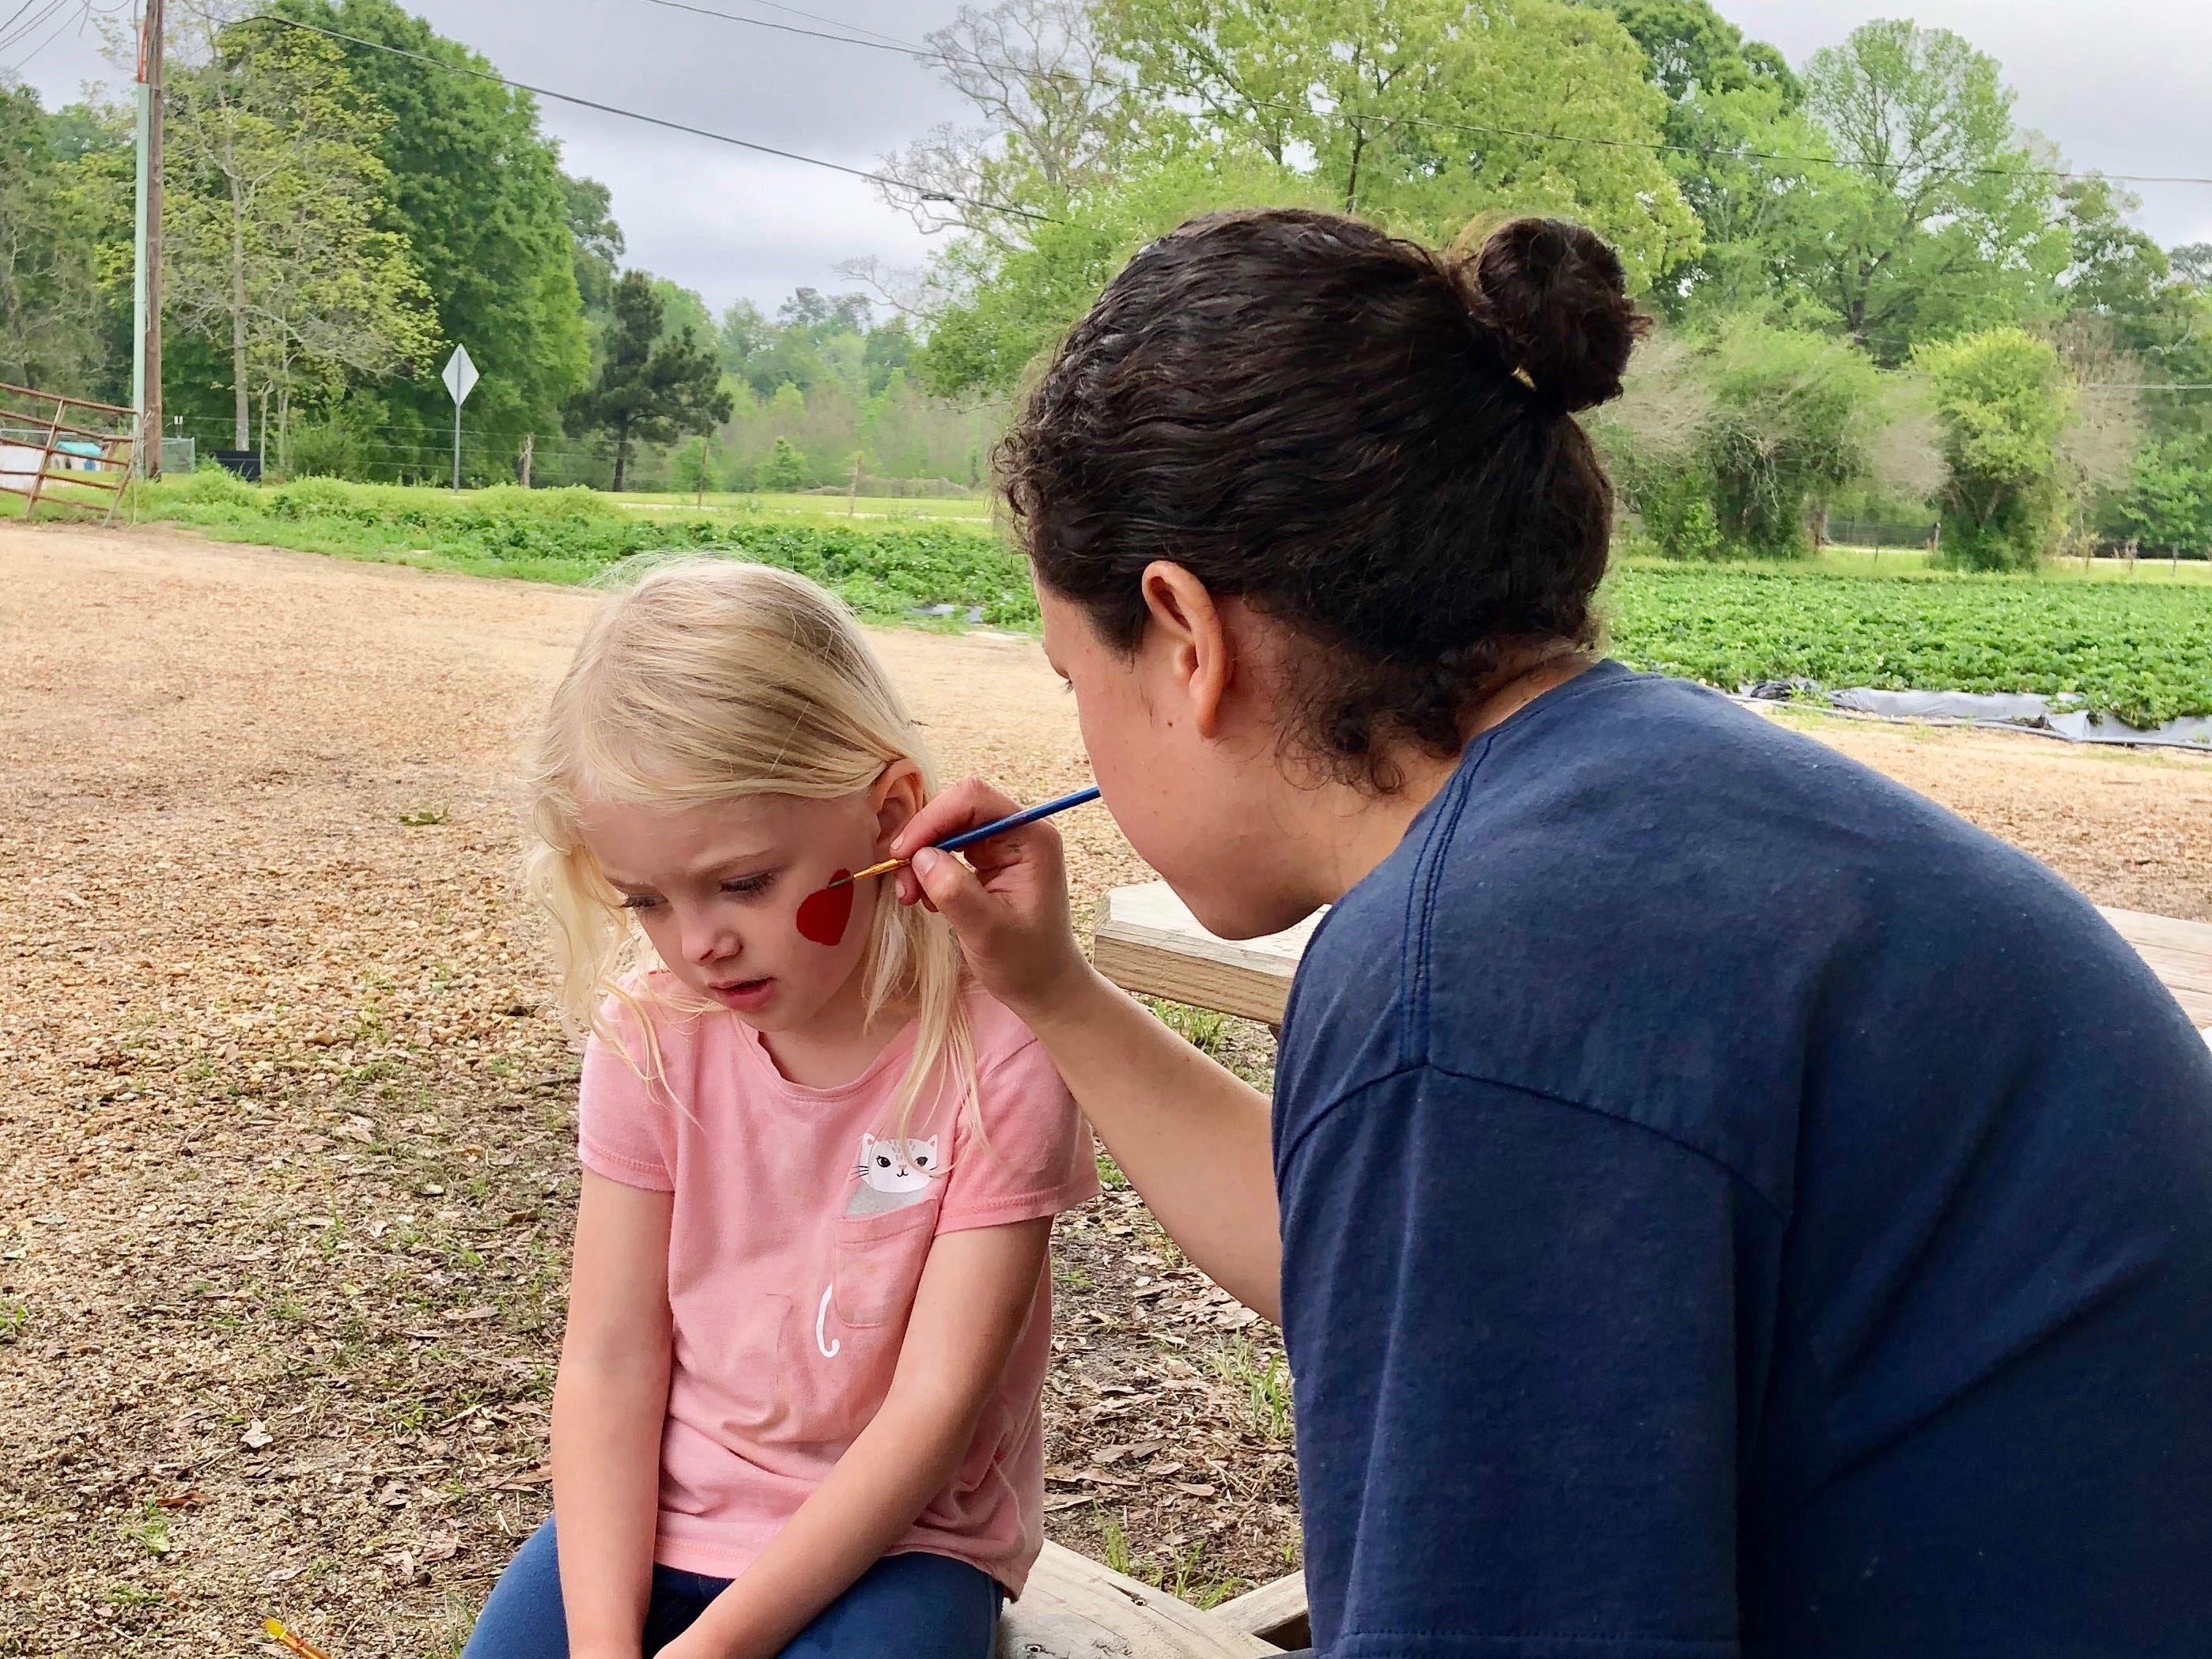 Claire Ivy gets a strawberry painted on her face April 6 at Mrs. Heather's Strawberry Farm in Albany, Louisiana.